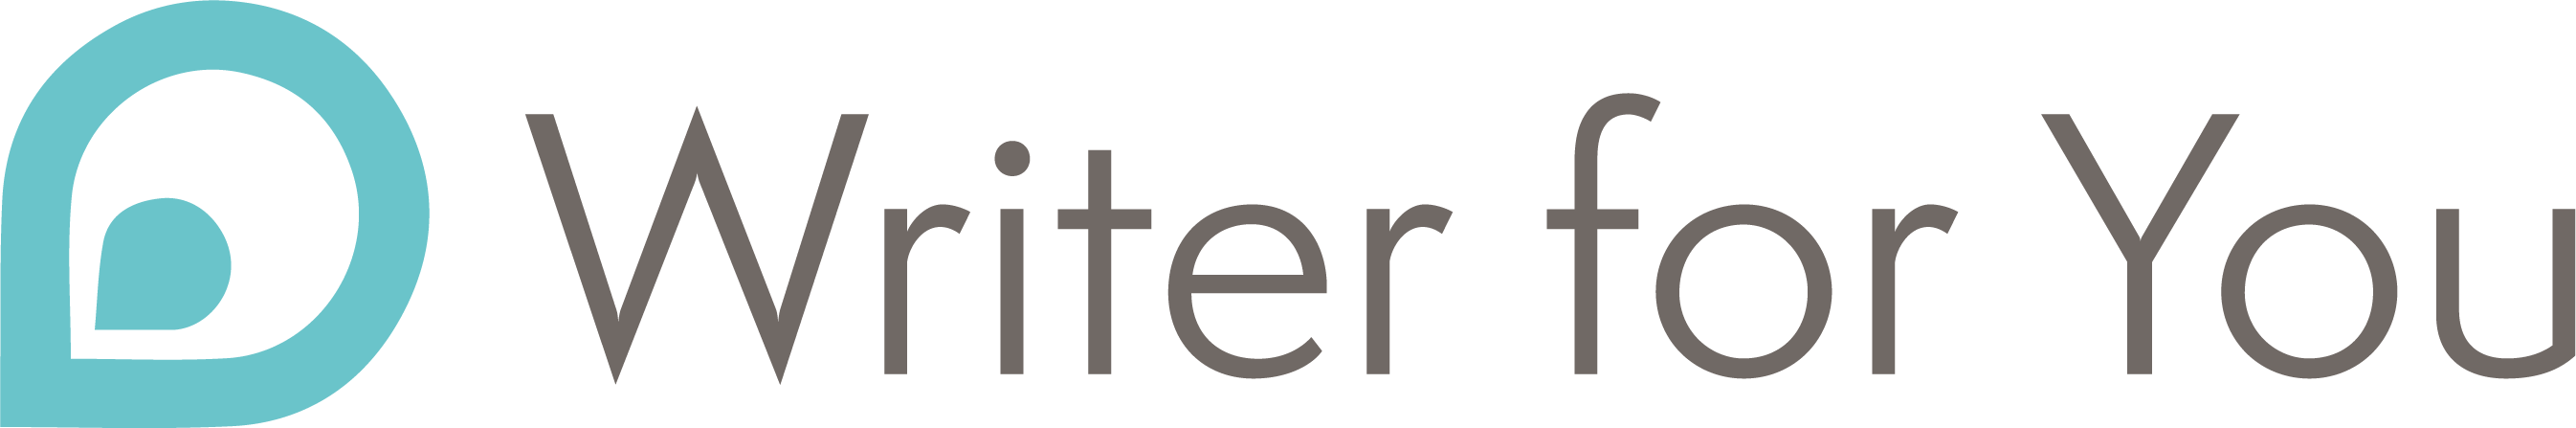 Witer for You logo